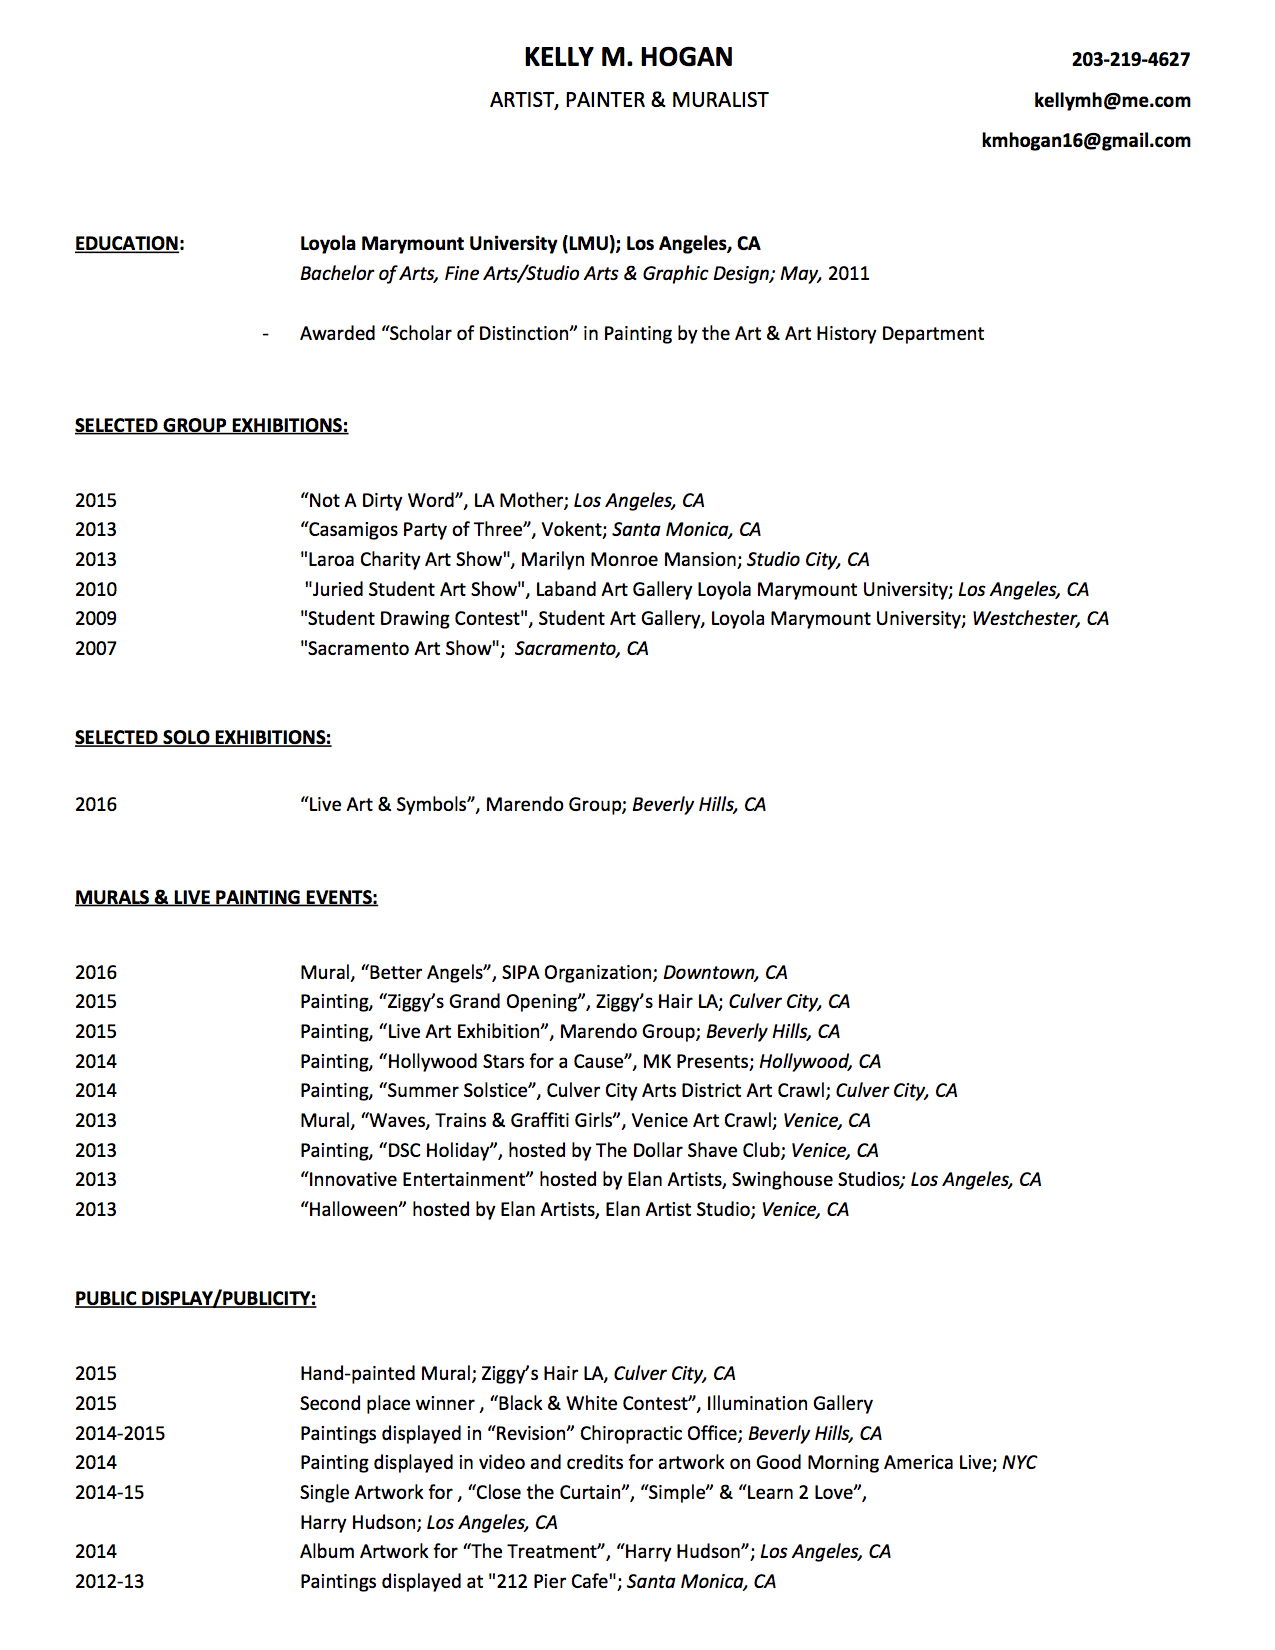 Kelly M. Hogan - Art Resume.jpg